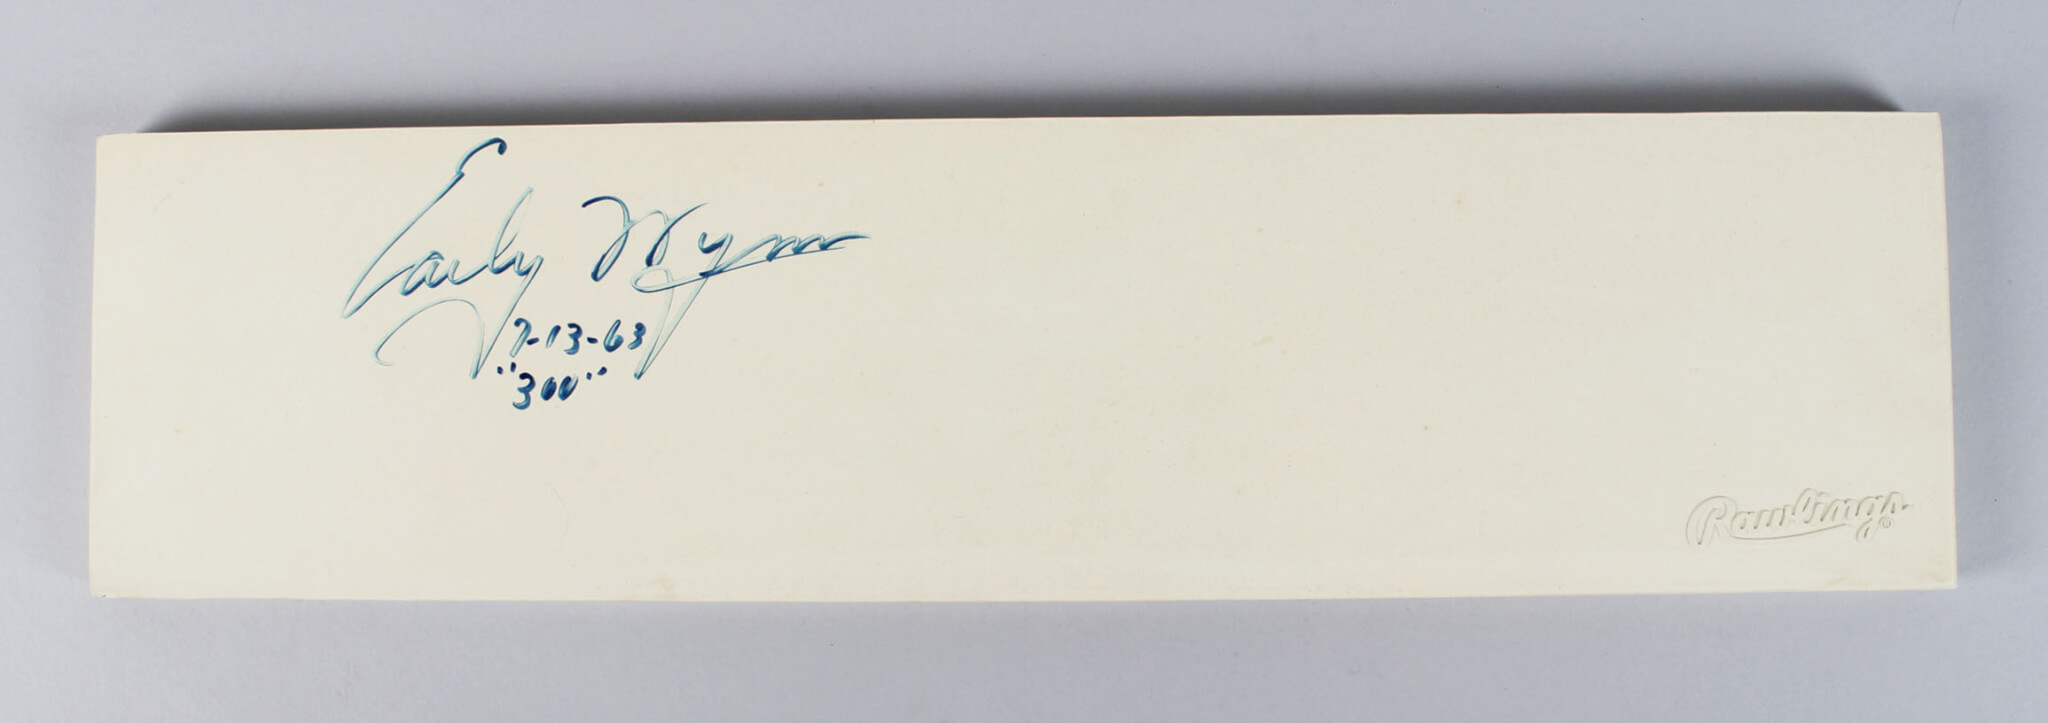 Early Wynn Signed Pitching Rubber Indians - COA JSA